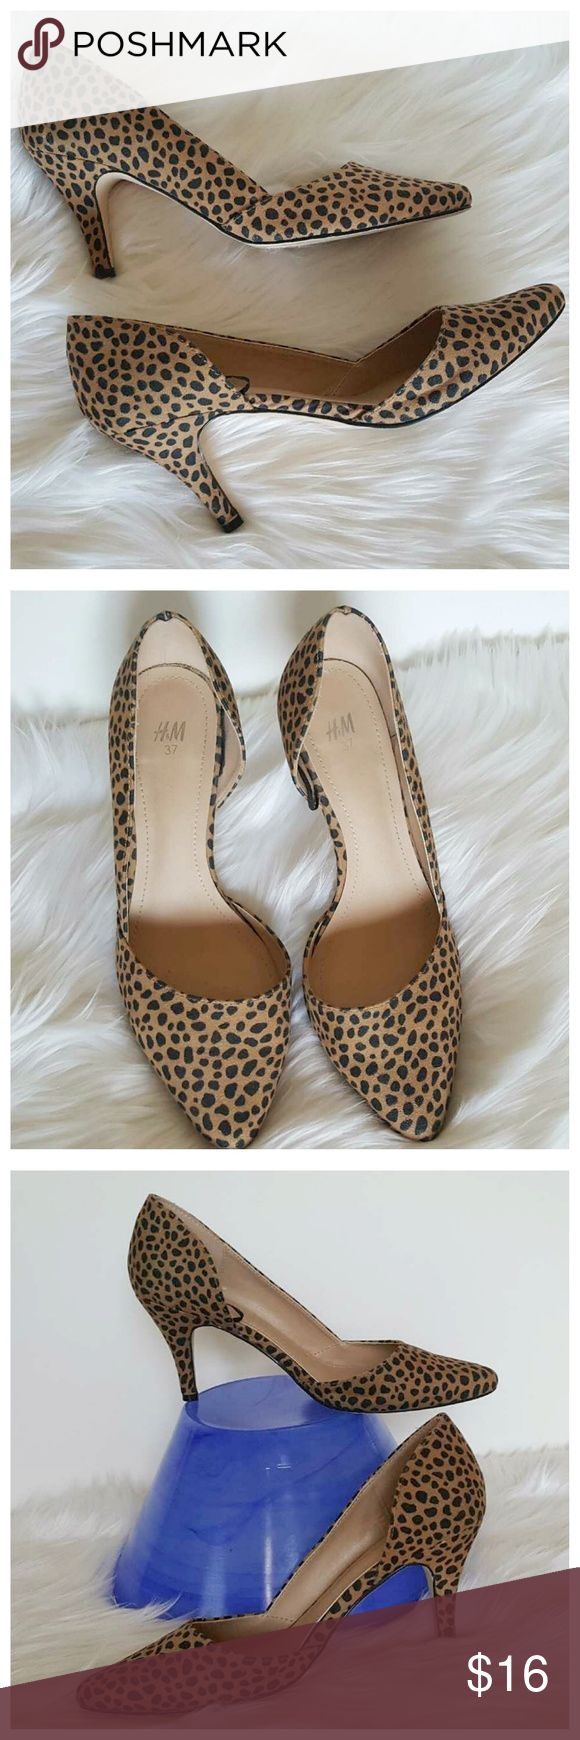 "H&M Leopard Print Pump Heels 37/7 Cute, flirty animal print pumps from H&M. Size – US 7, EUR 37. Kitty 2"" heel. Pre-loved in very good condition with minimal wear on bottoms (shown in pics). Perfect to pair with skinny jeans, leggings, skirt or dress, so versatile. H&M Shoes Heels"